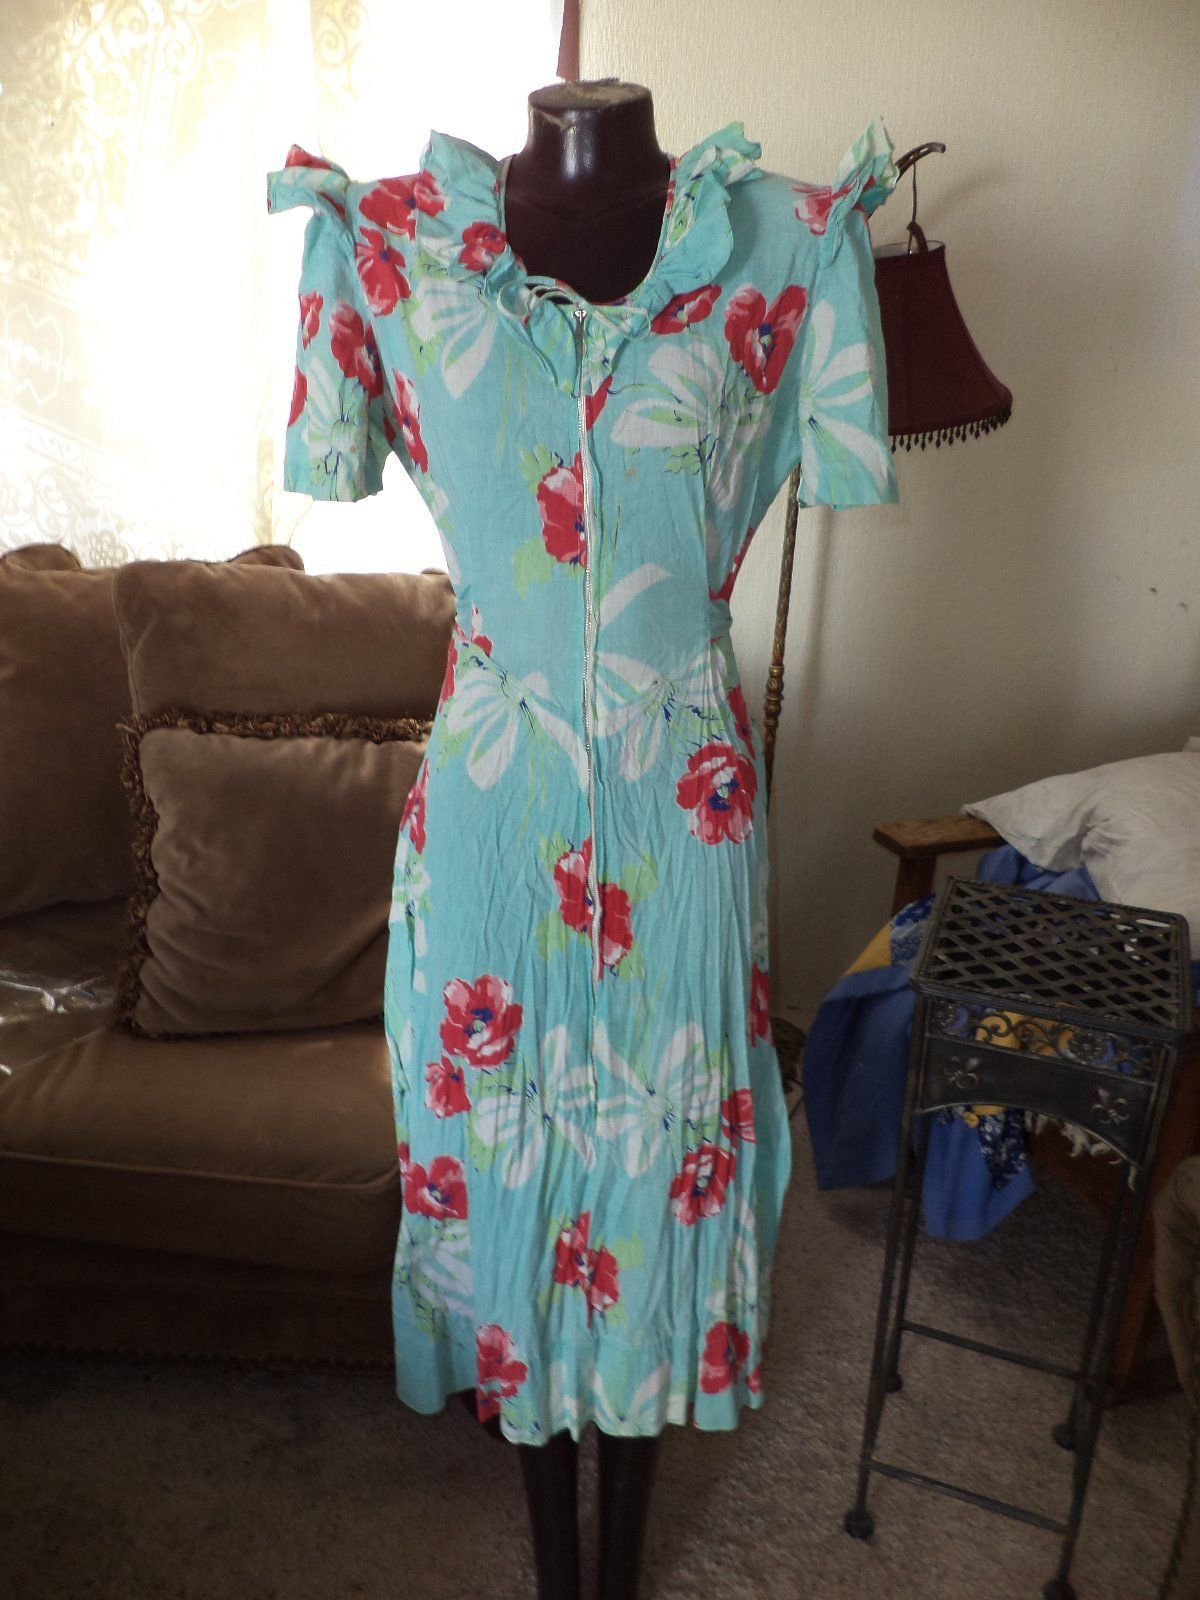 Vintage 1930's-1940's Woman's Seafoam and Red Floral Ruffled Sleeve Dress